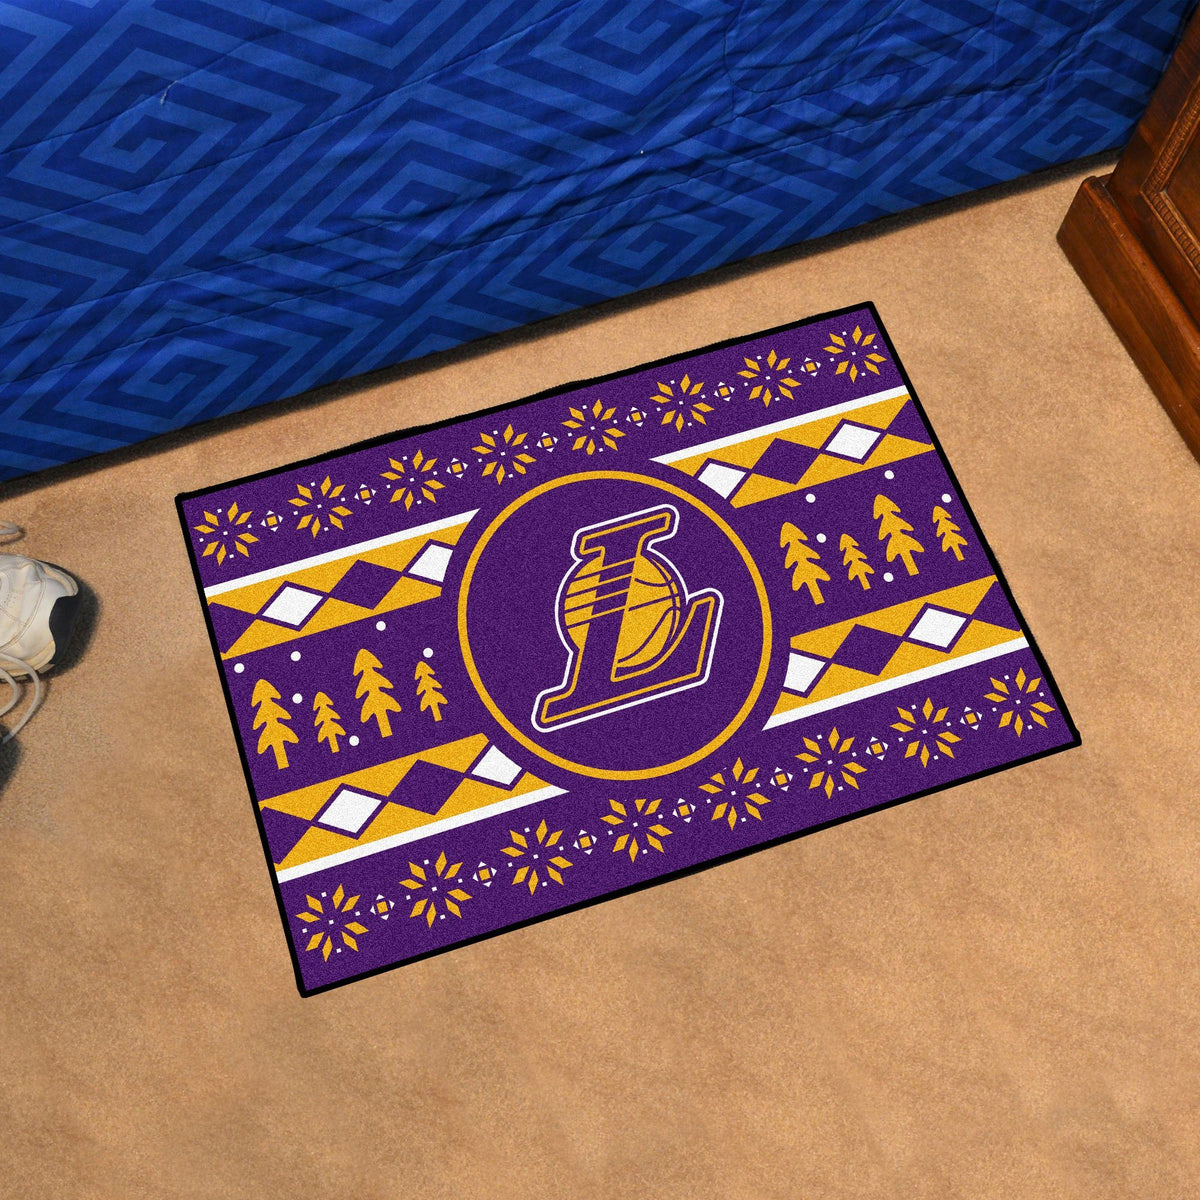 NBA - Holiday Sweater Starter Mat NBA Mats, Rectangular Mats, Holiday Sweater Starter Mat, NBA, Home Fan Mats Los Angeles Lakers